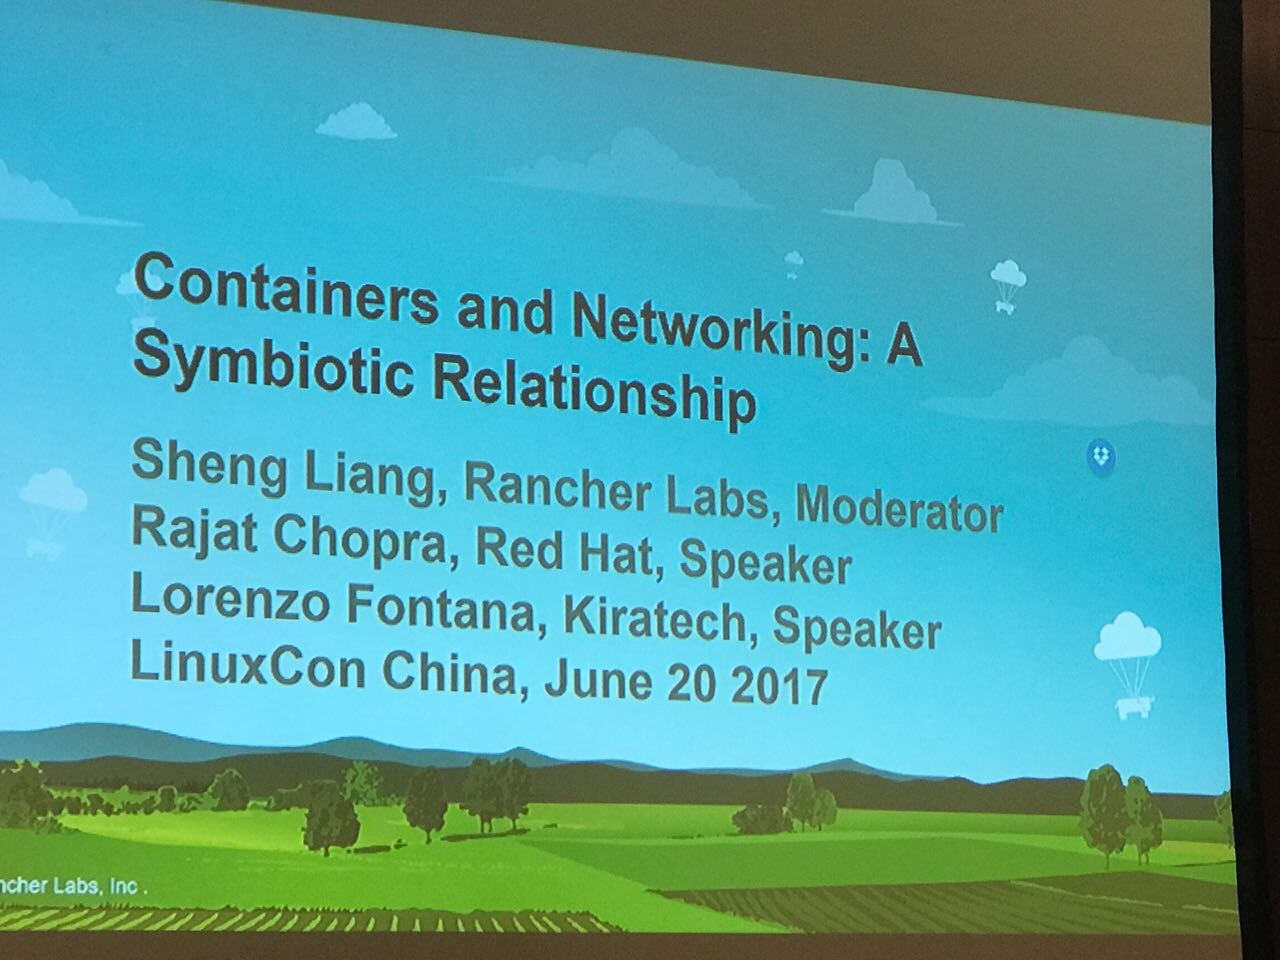 Containers-and-Networking-A-Symbiotic-Relationship-Lorenzo-Fontana.jpg